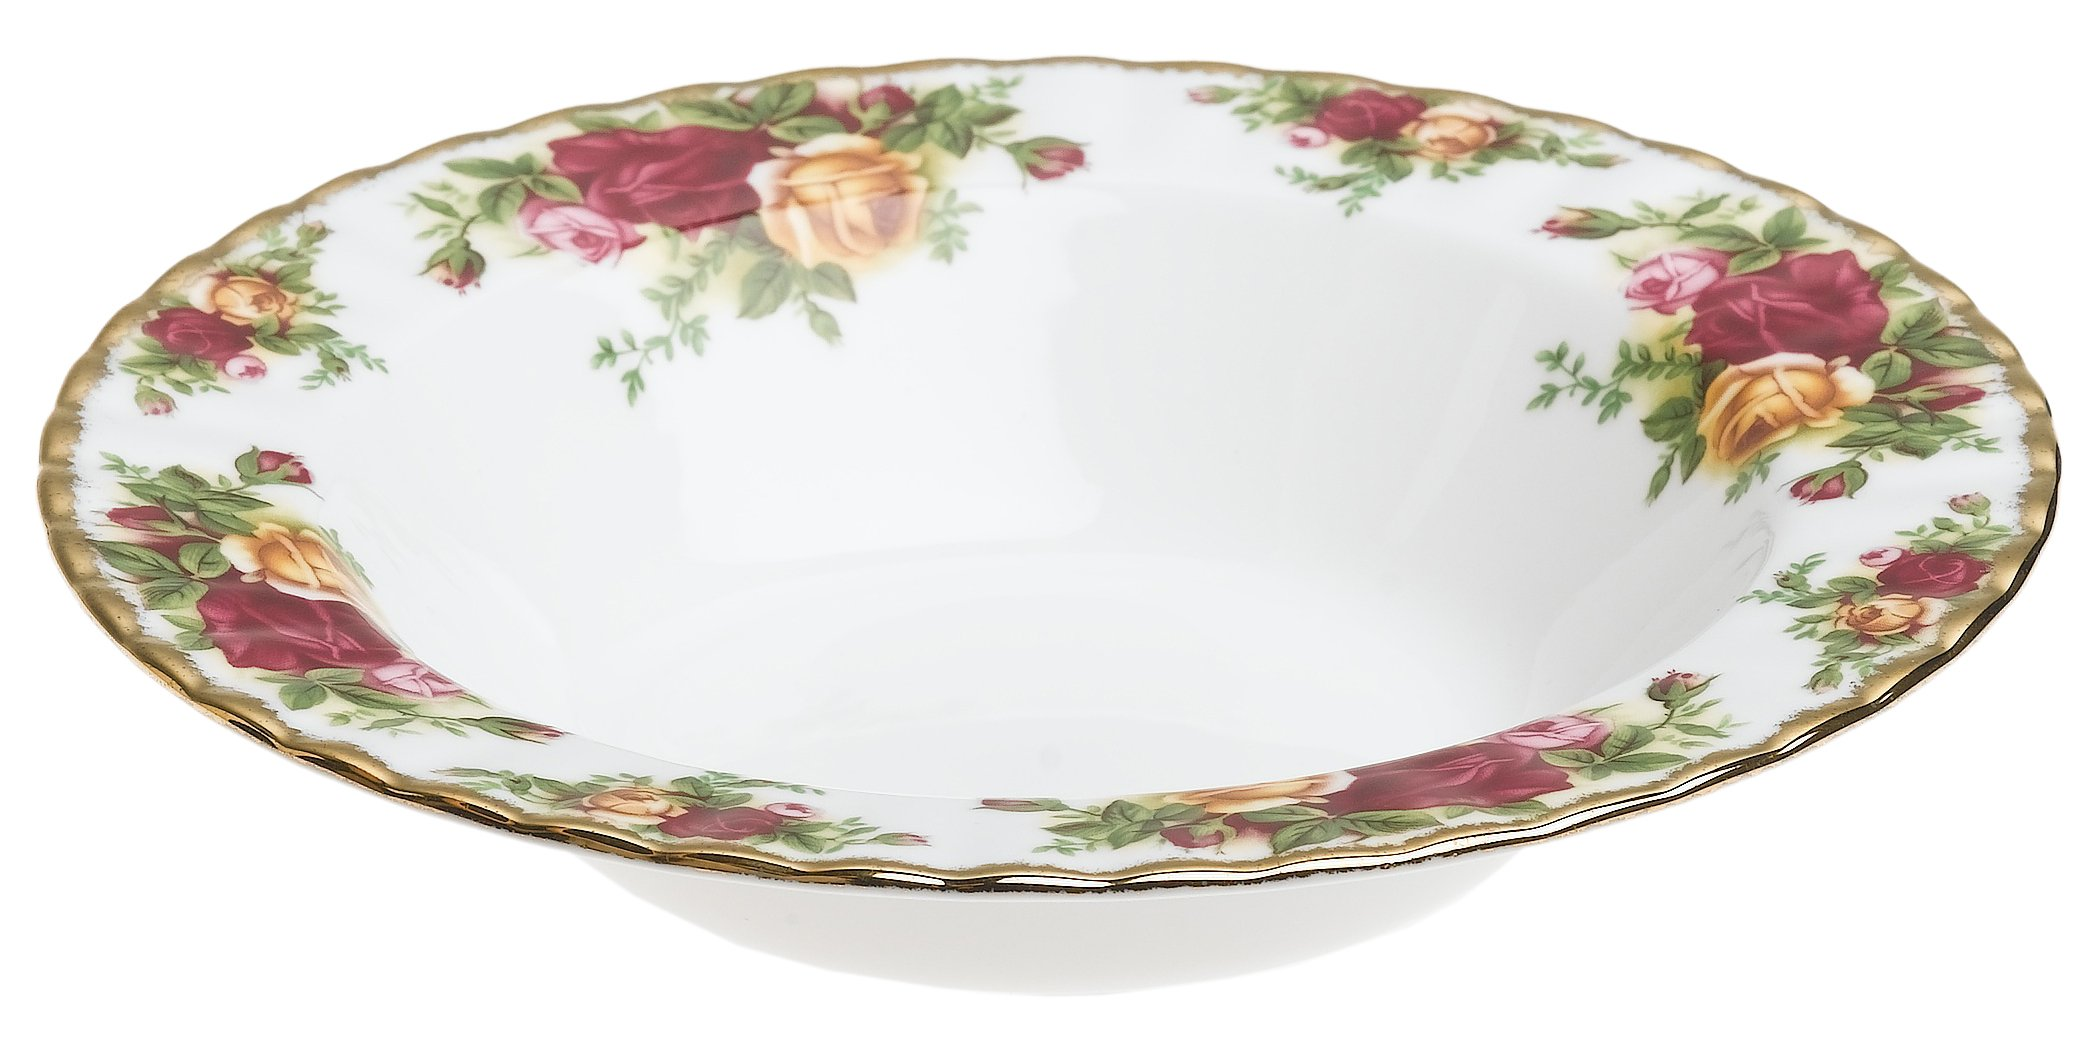 Royal Albert Old Country Roses8-inch Rim Soups, Set of 4